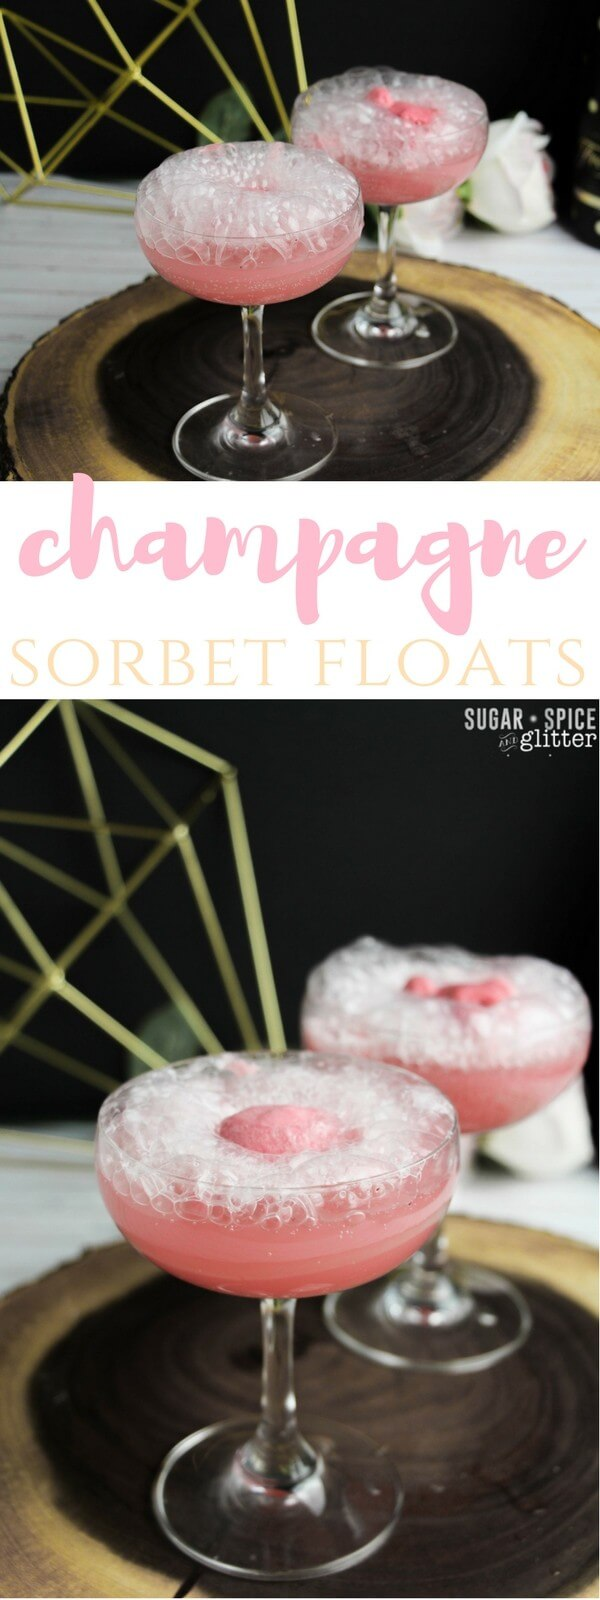 The perfect way to celebrate - with cocktails and dessert at the same time! These cute and bubbly champagne sorbet floats are the perfect cocktail to toast your special occasion